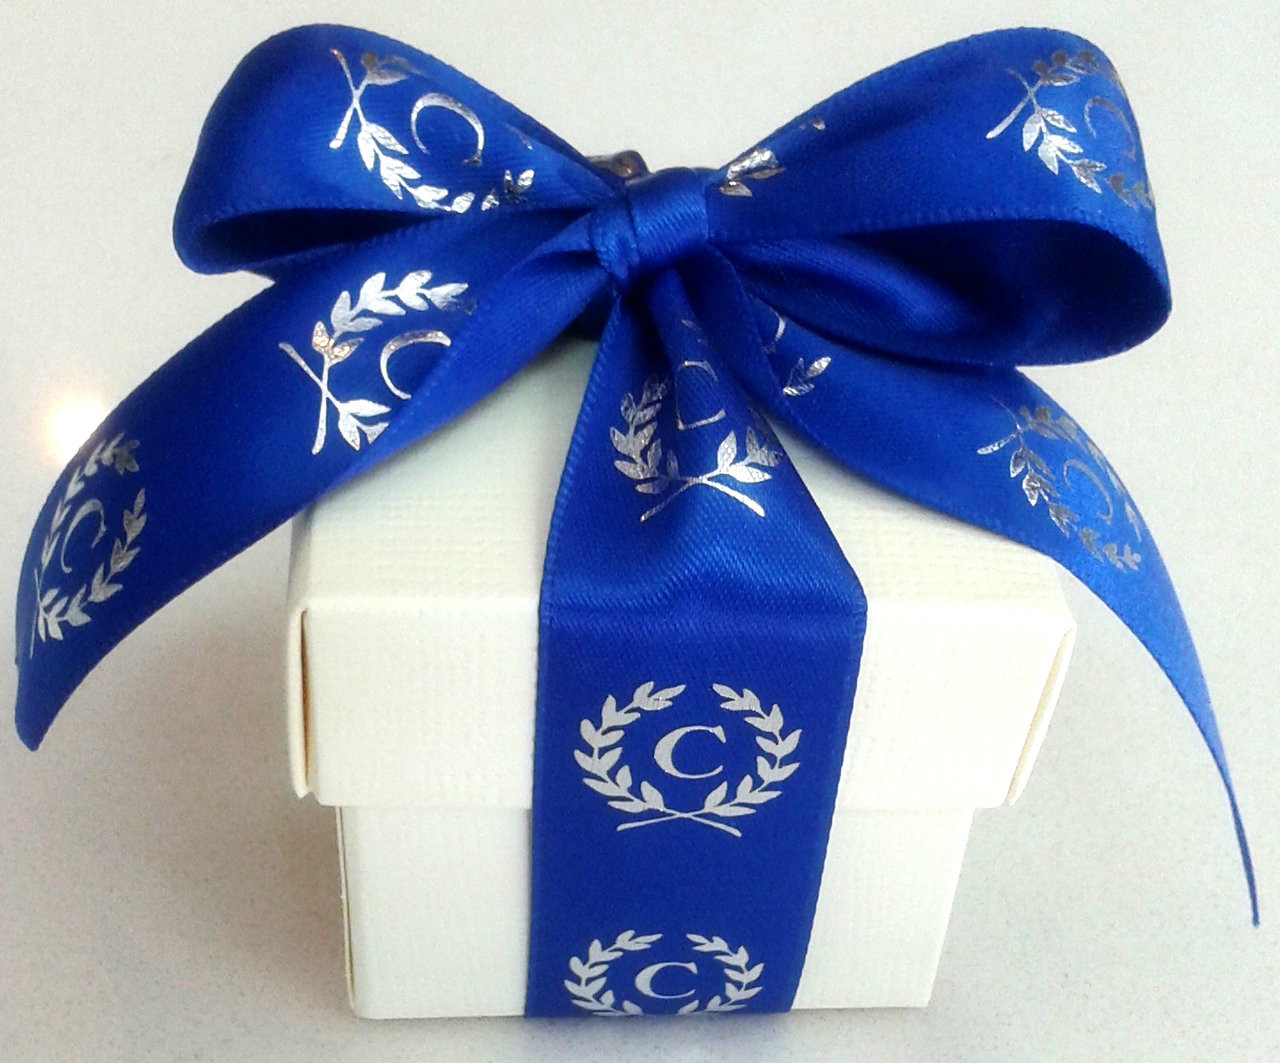 Personalized Boxes